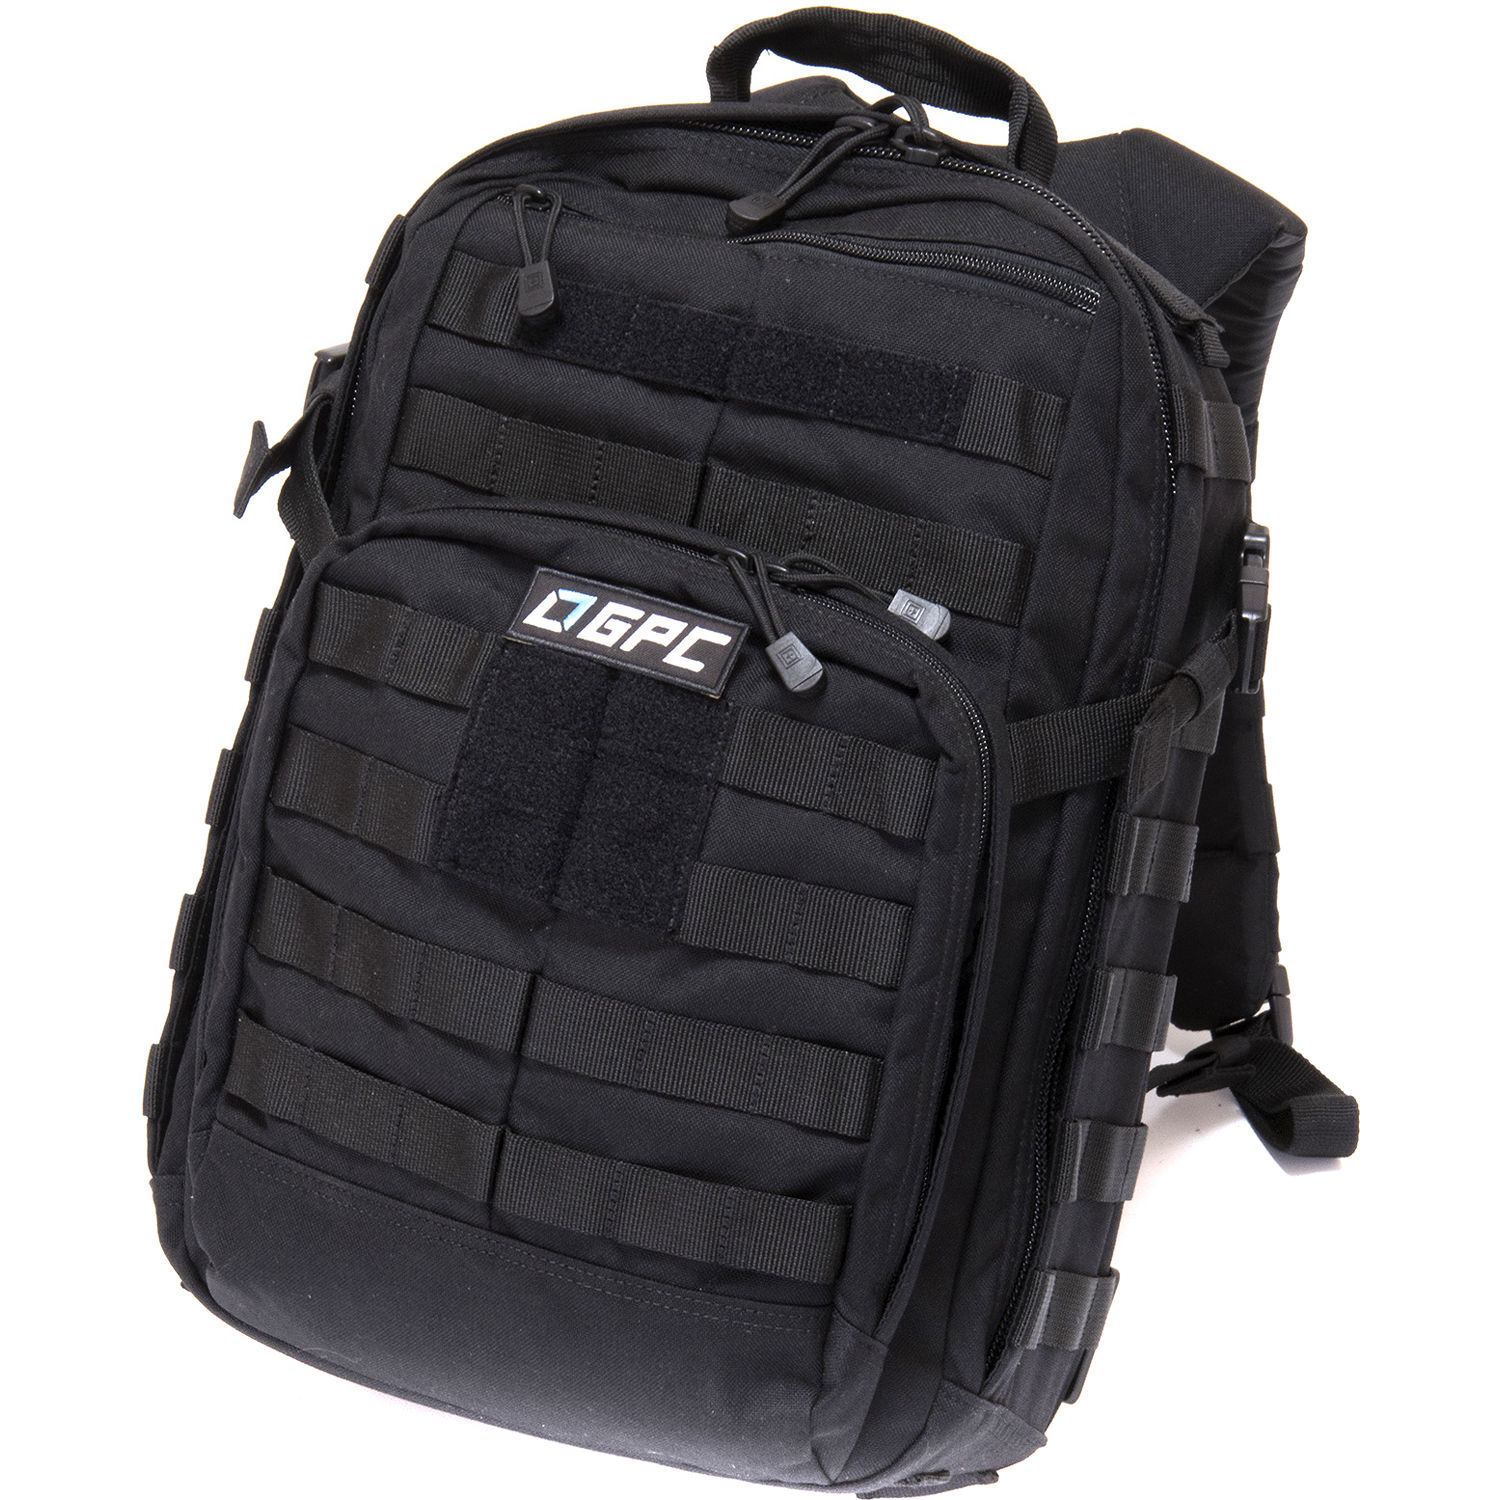 0314d04529d Go Professional Cases Limited Edition Backpack for DJI Mavic 2 Pro/Zoom